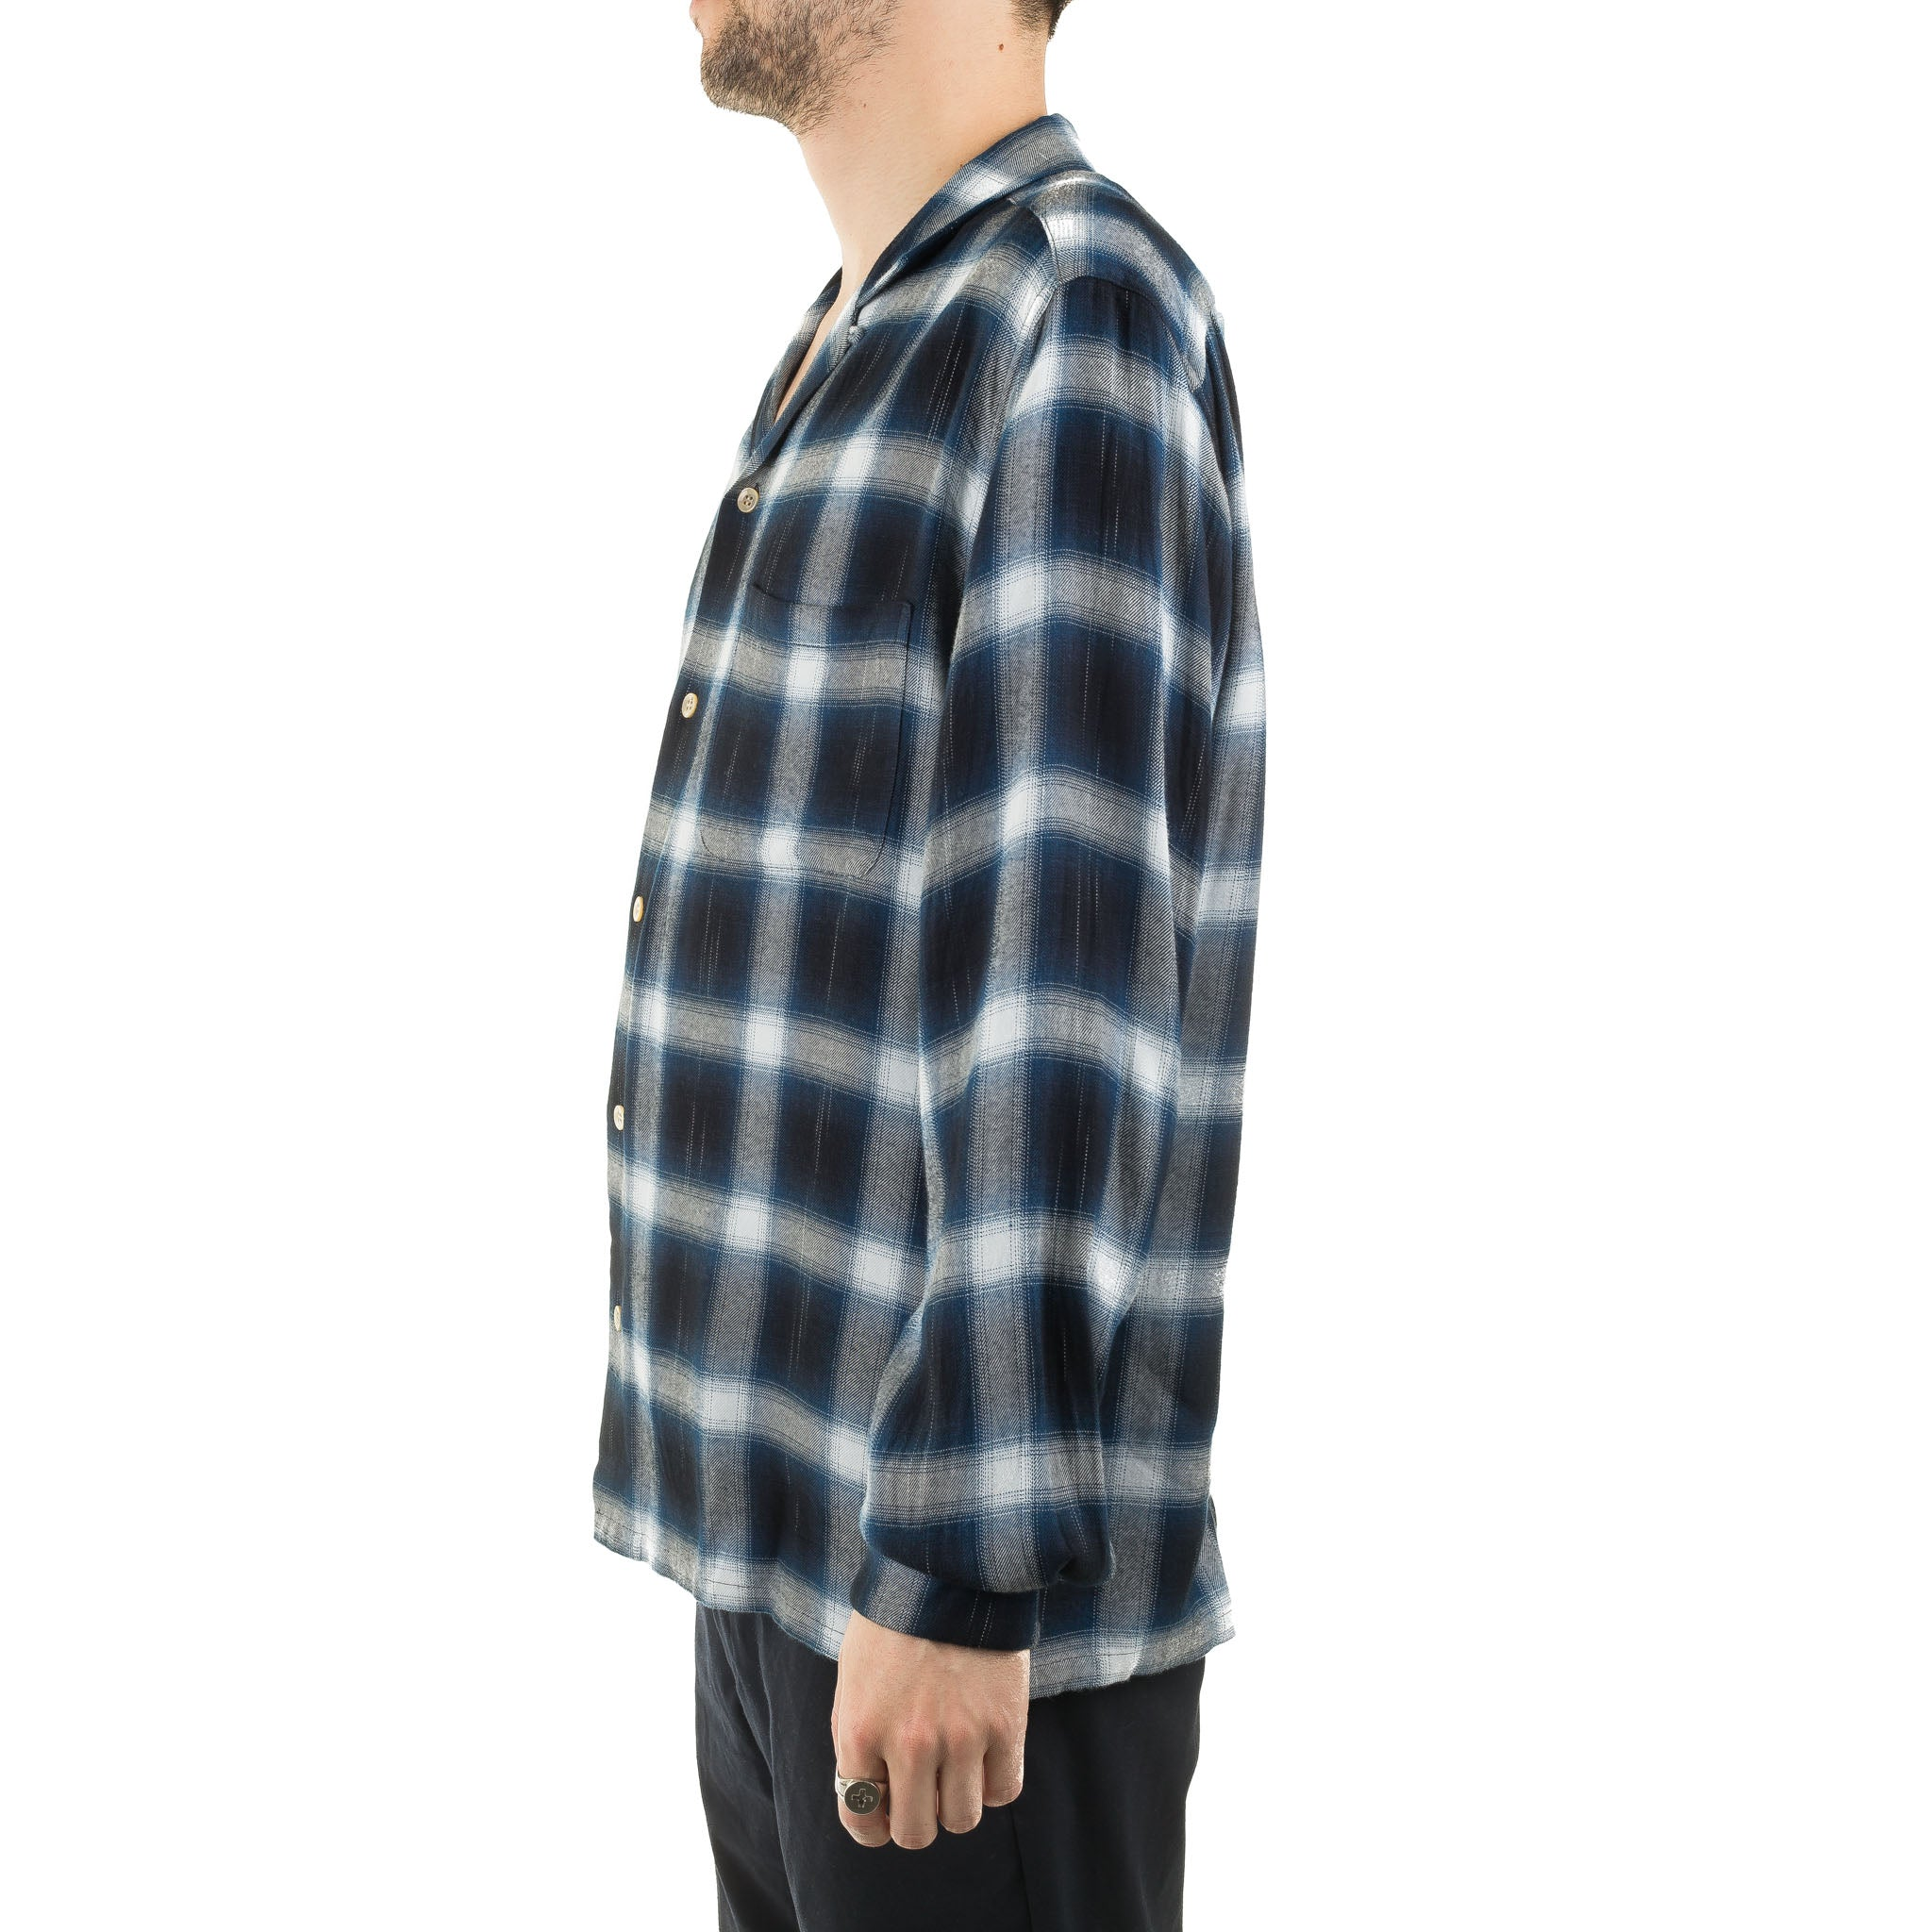 Splashed Pattern L/S Shirt J6100 Navy